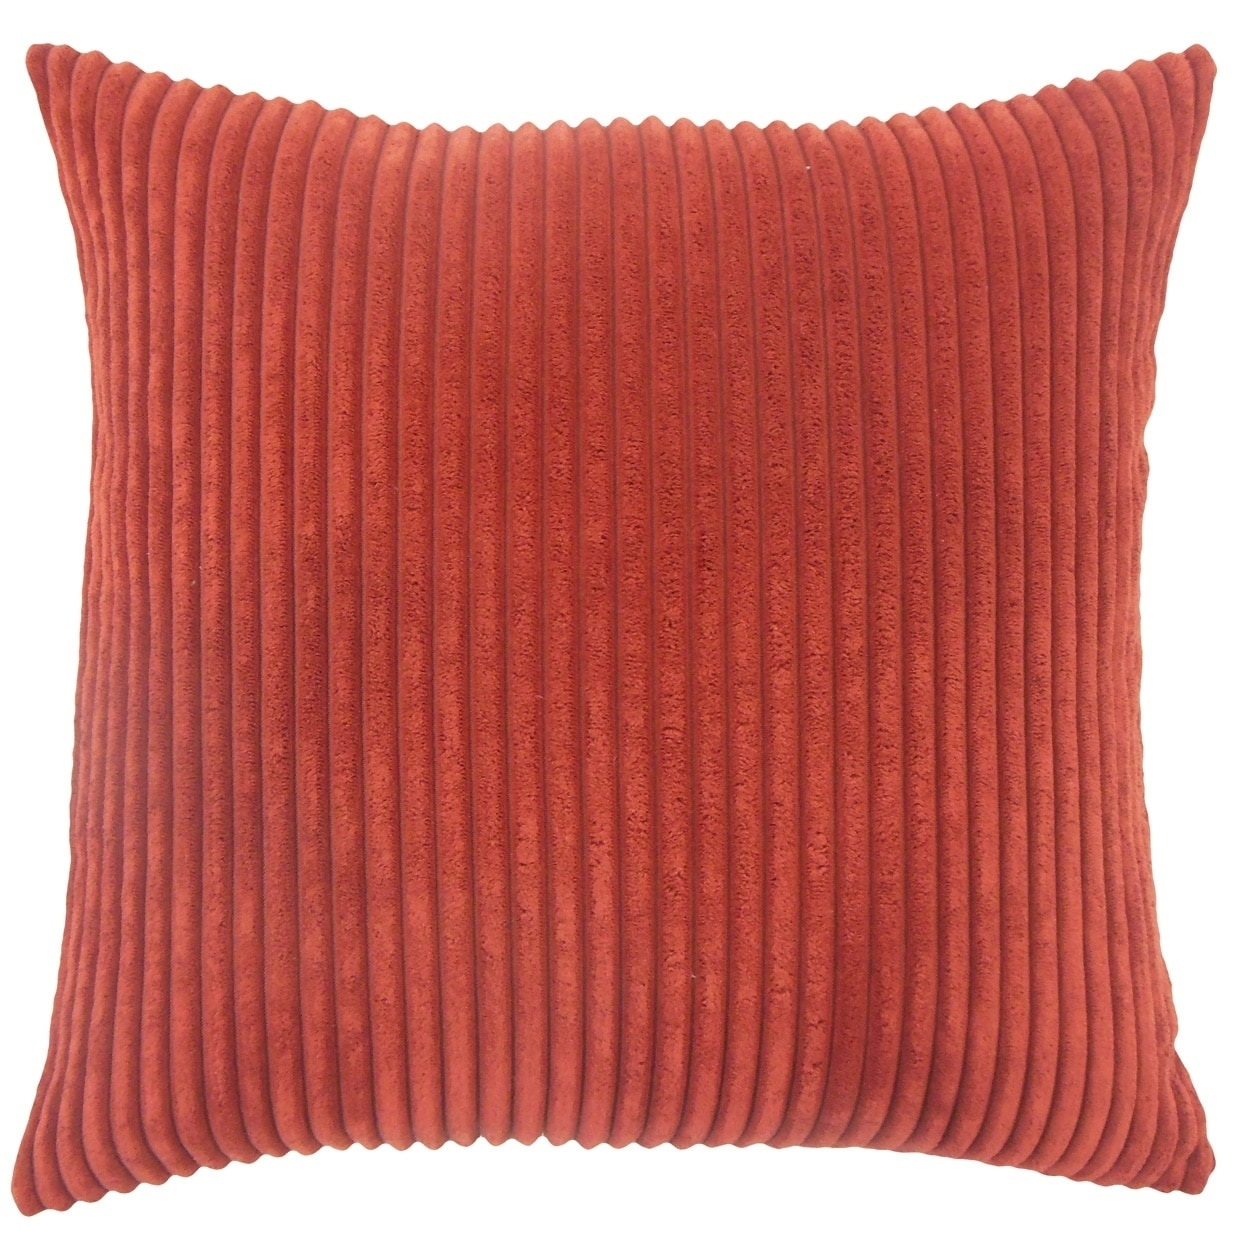 Calvine Solid Down Filled Throw Pillow in Crimson (Square - 18 x 18)